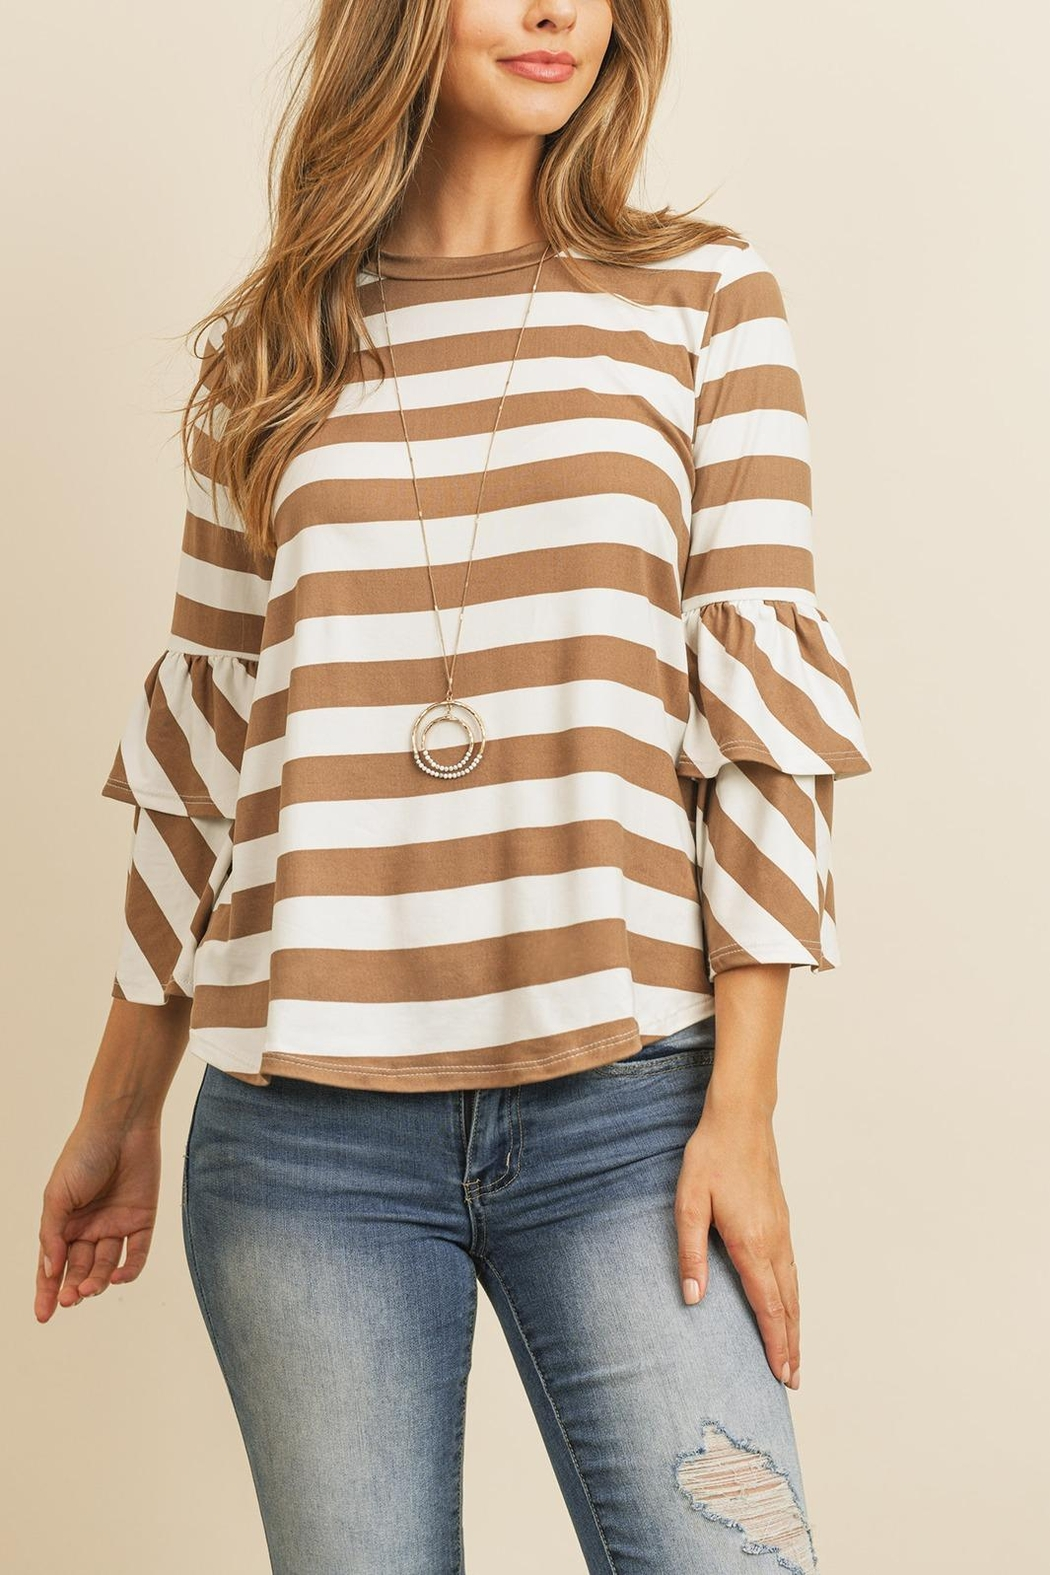 Riah Fashion Double-Ruffle-Long-Sleeve-Top - Front Cropped Image